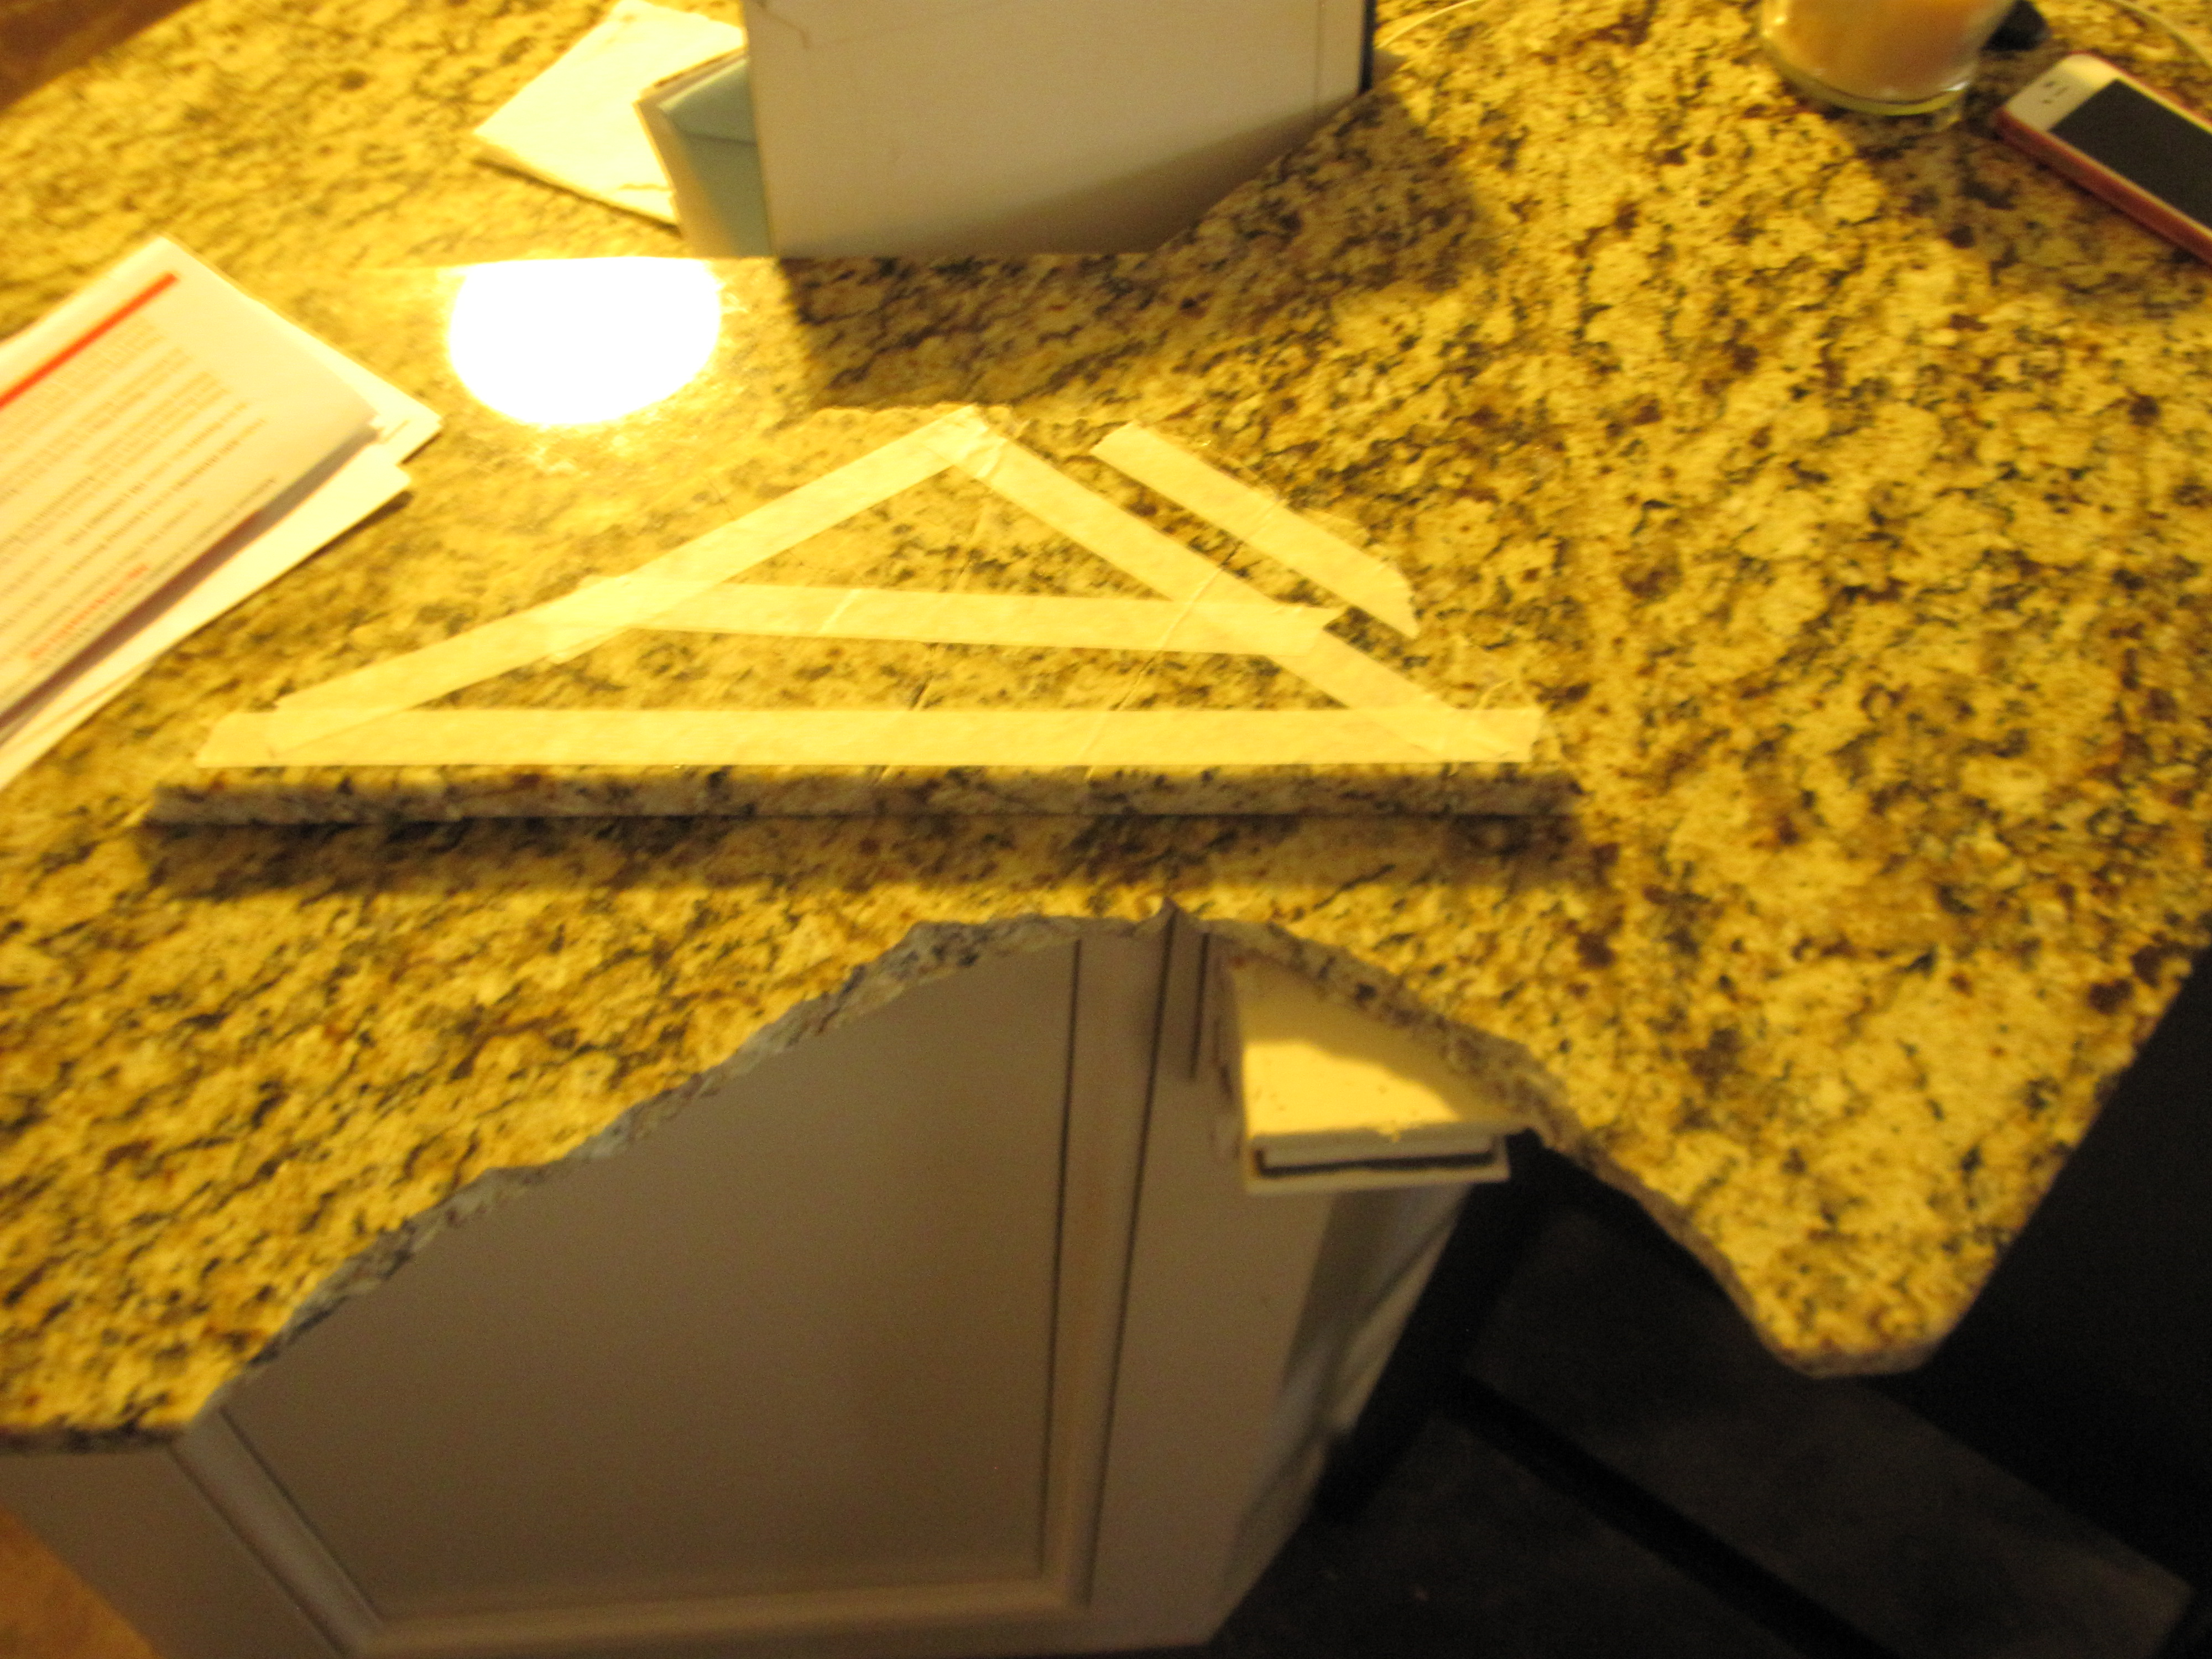 granite--break-damage-452.jpg